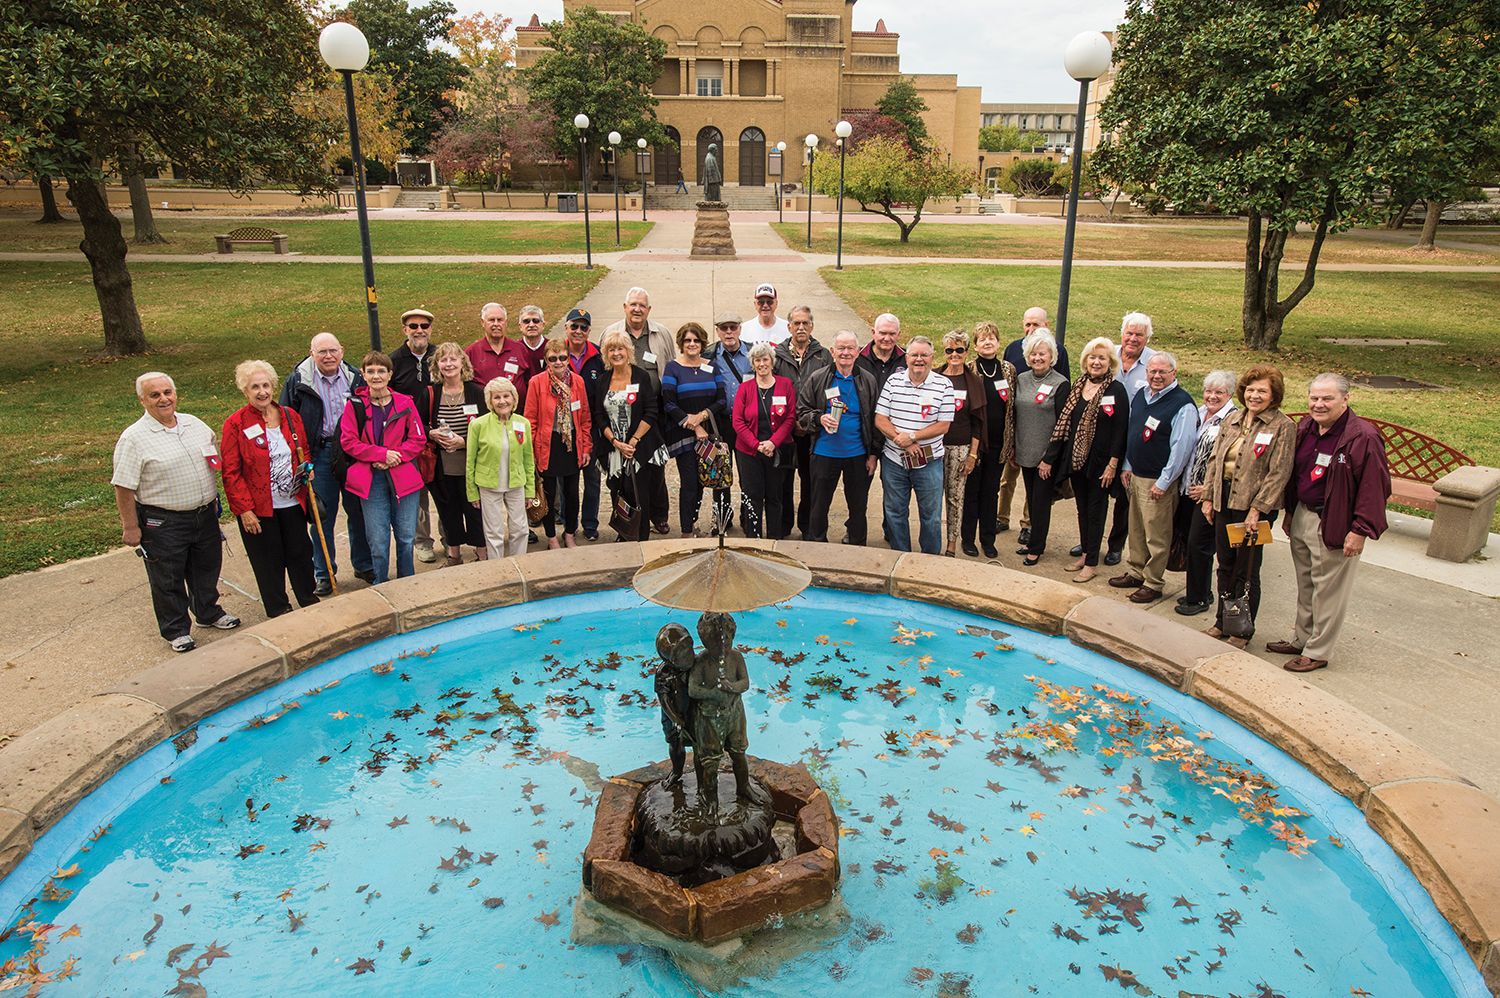 Southern Illinois University Class of '65 donates to restore the Paul and Virigina Statue.